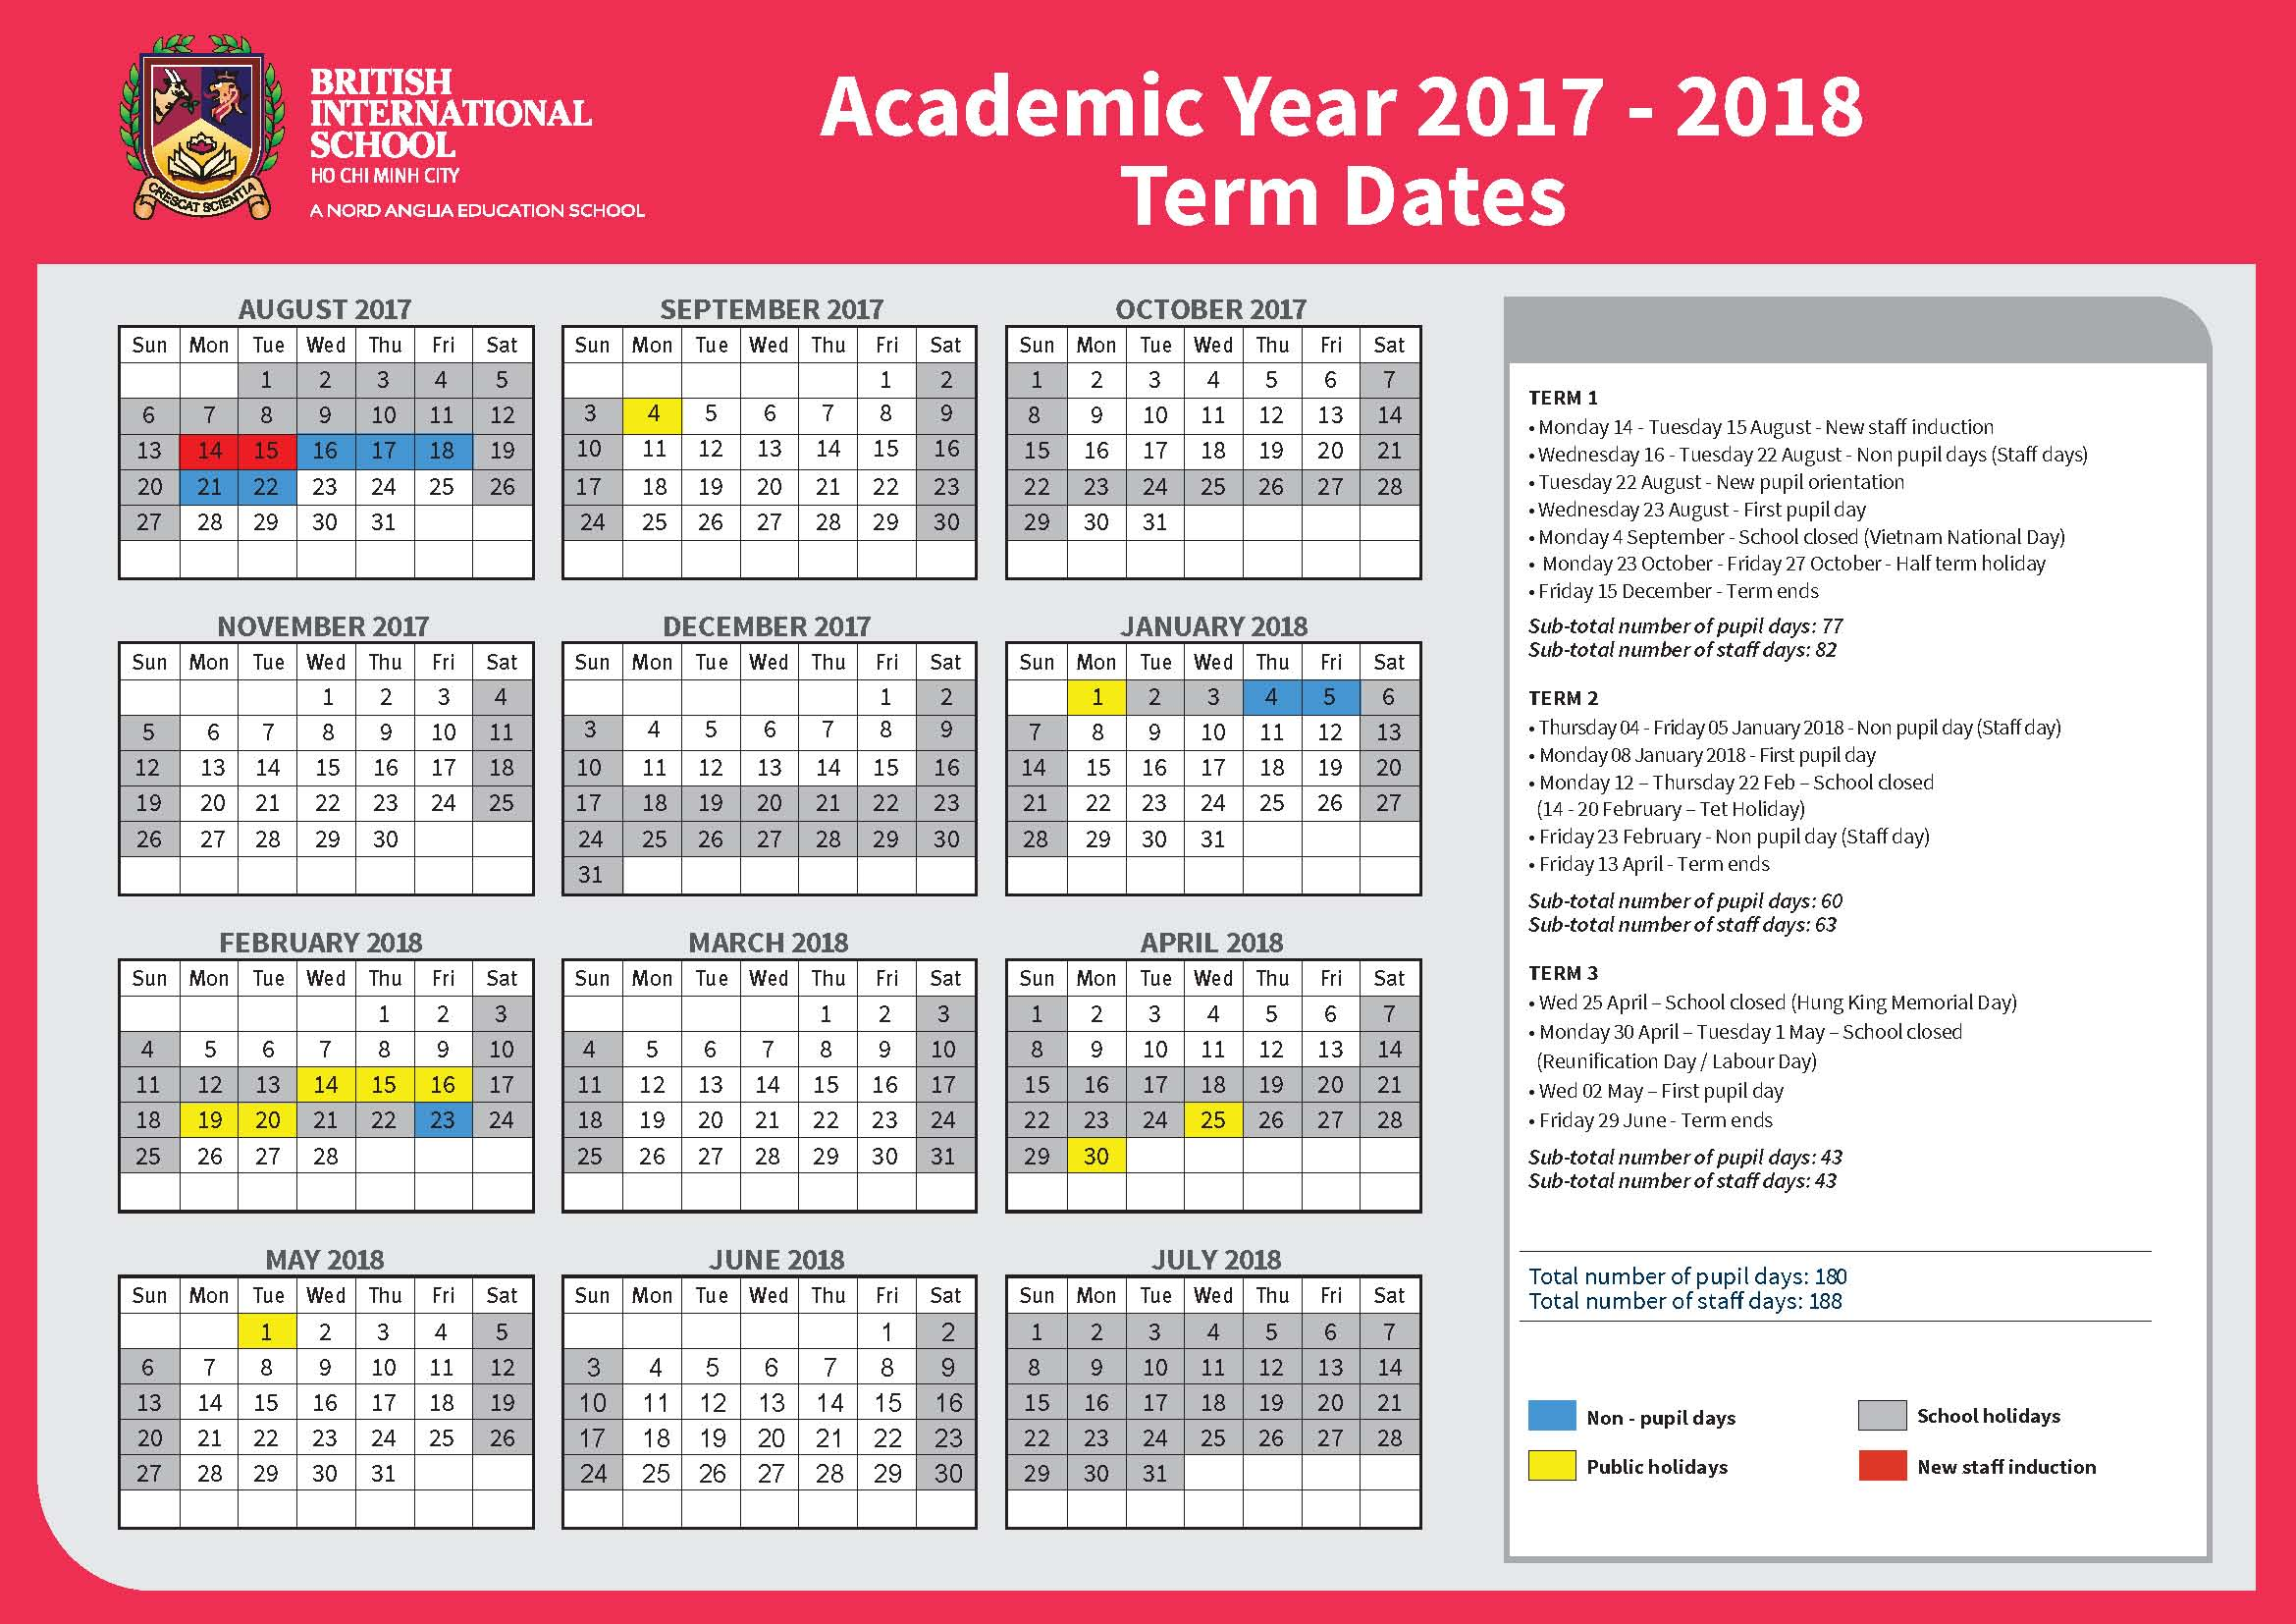 BIS HCMC Term Dates 2017-2018